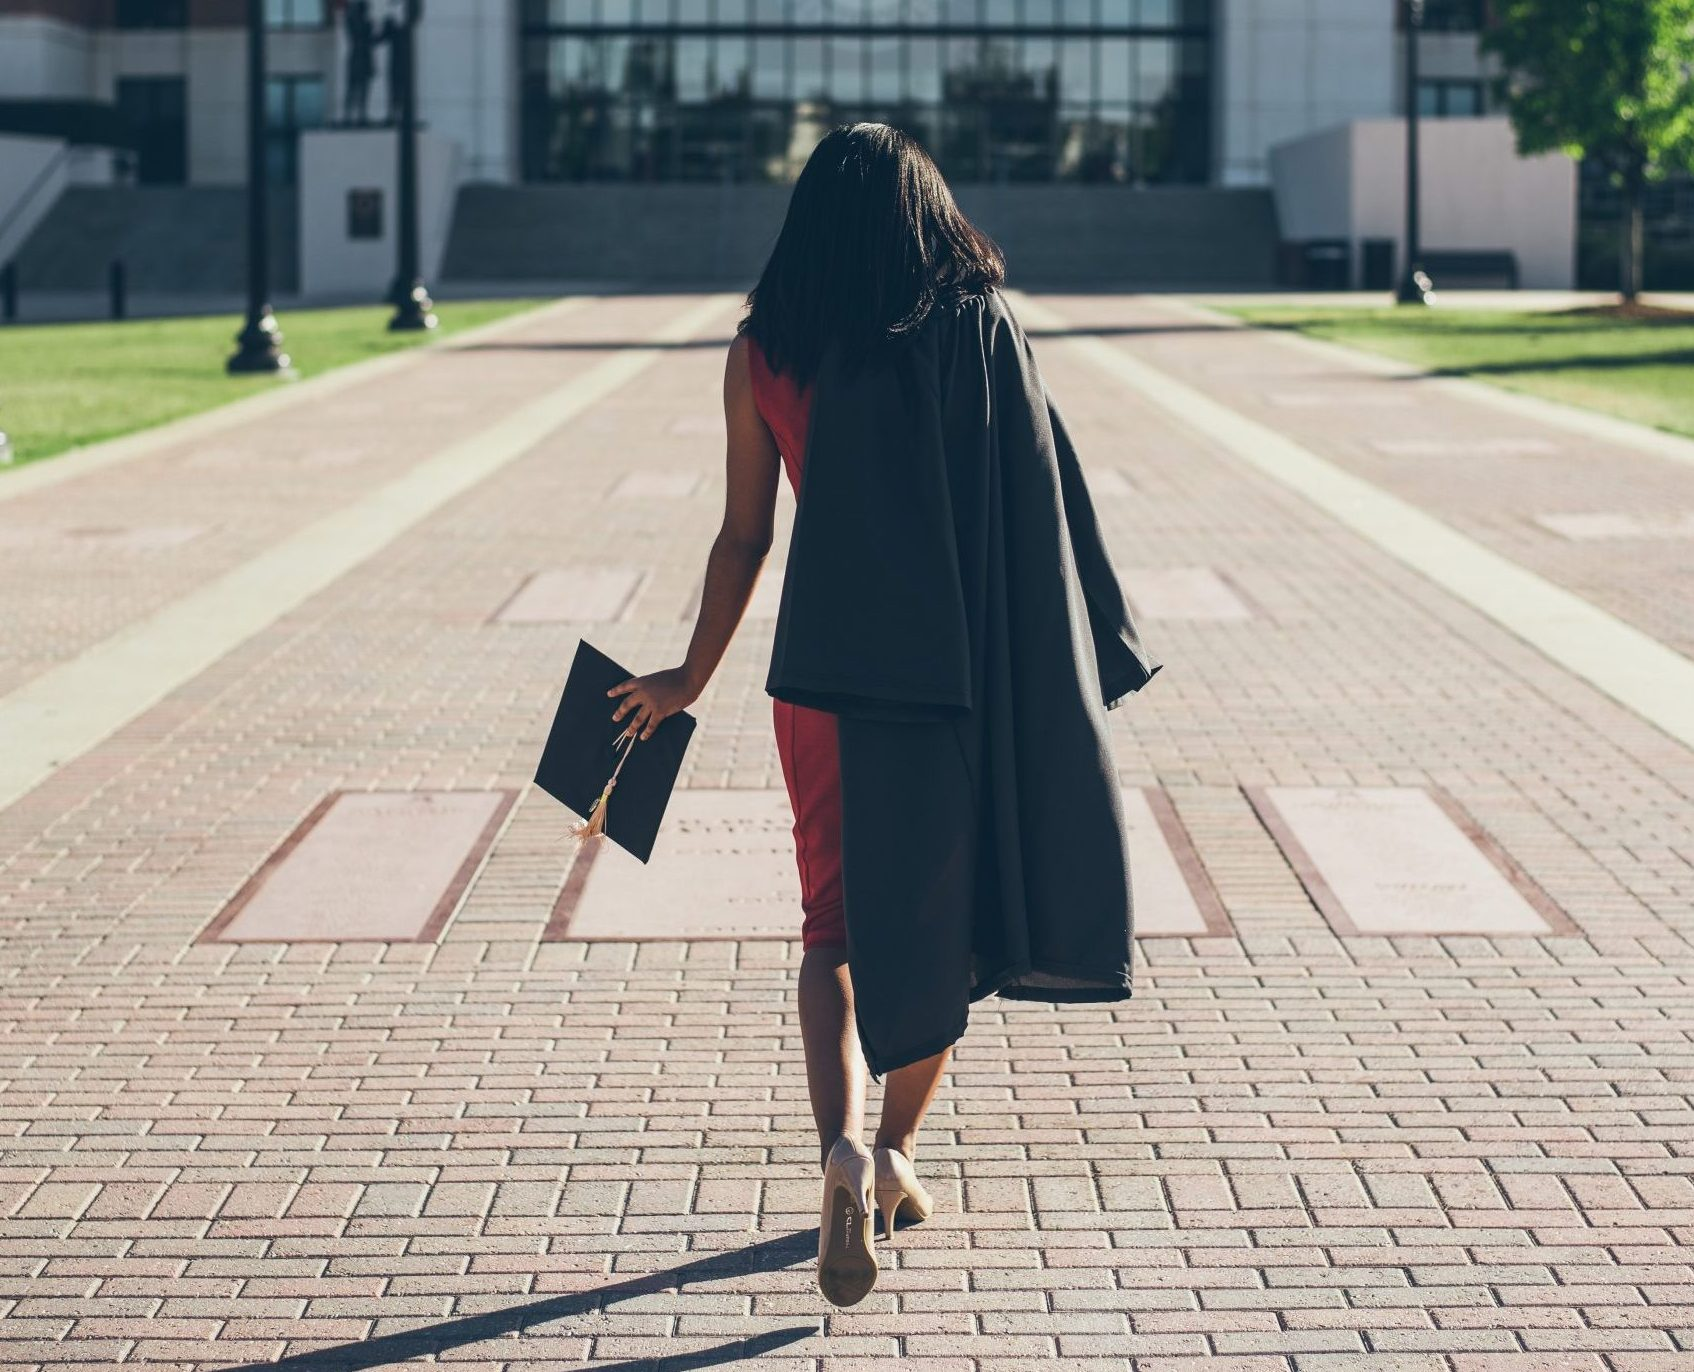 6 Personal Finance Tips for New Graduates